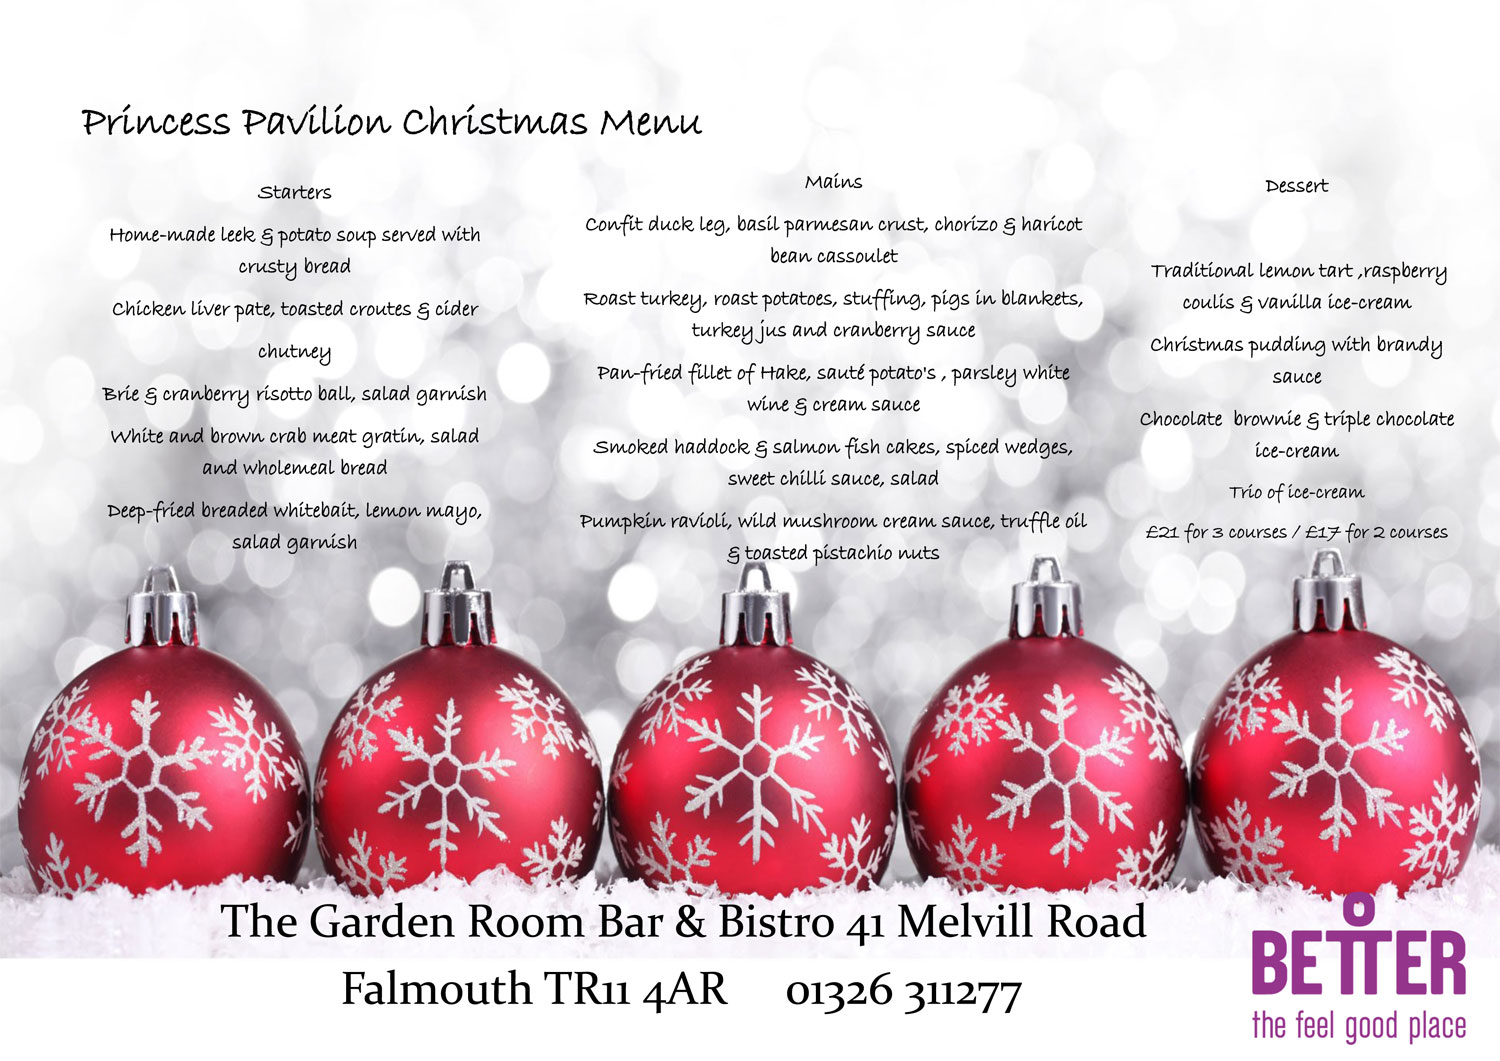 Enjoy Princess Pavilion's fabulous Festive Menu £21 for 3 courses / £17 for 2 Save £'s when you book at the same time as you buy your tickets! call 01326 211 222